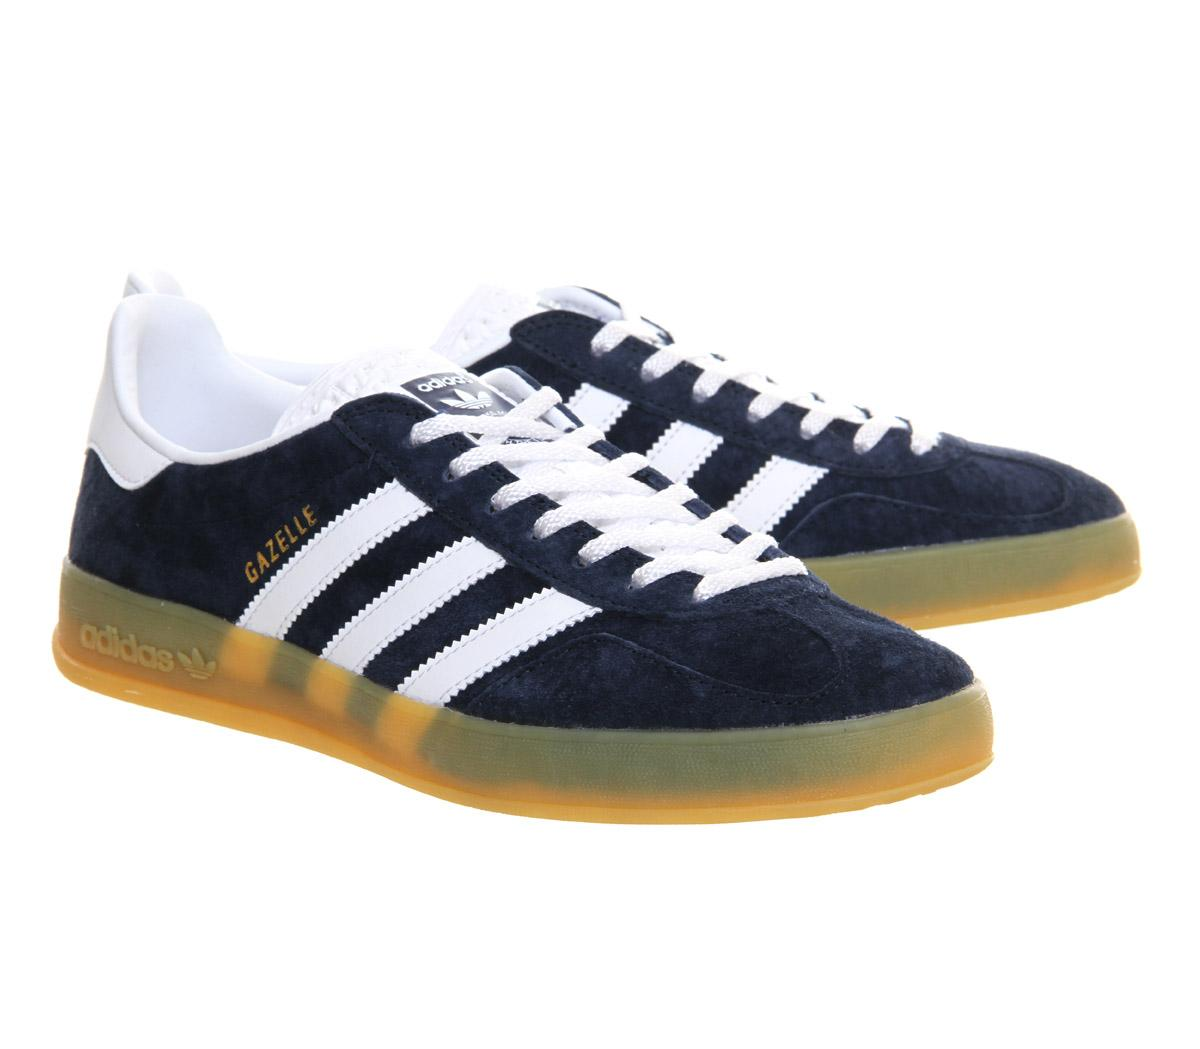 Gallery. Men\u0027s Adidas Gazelle